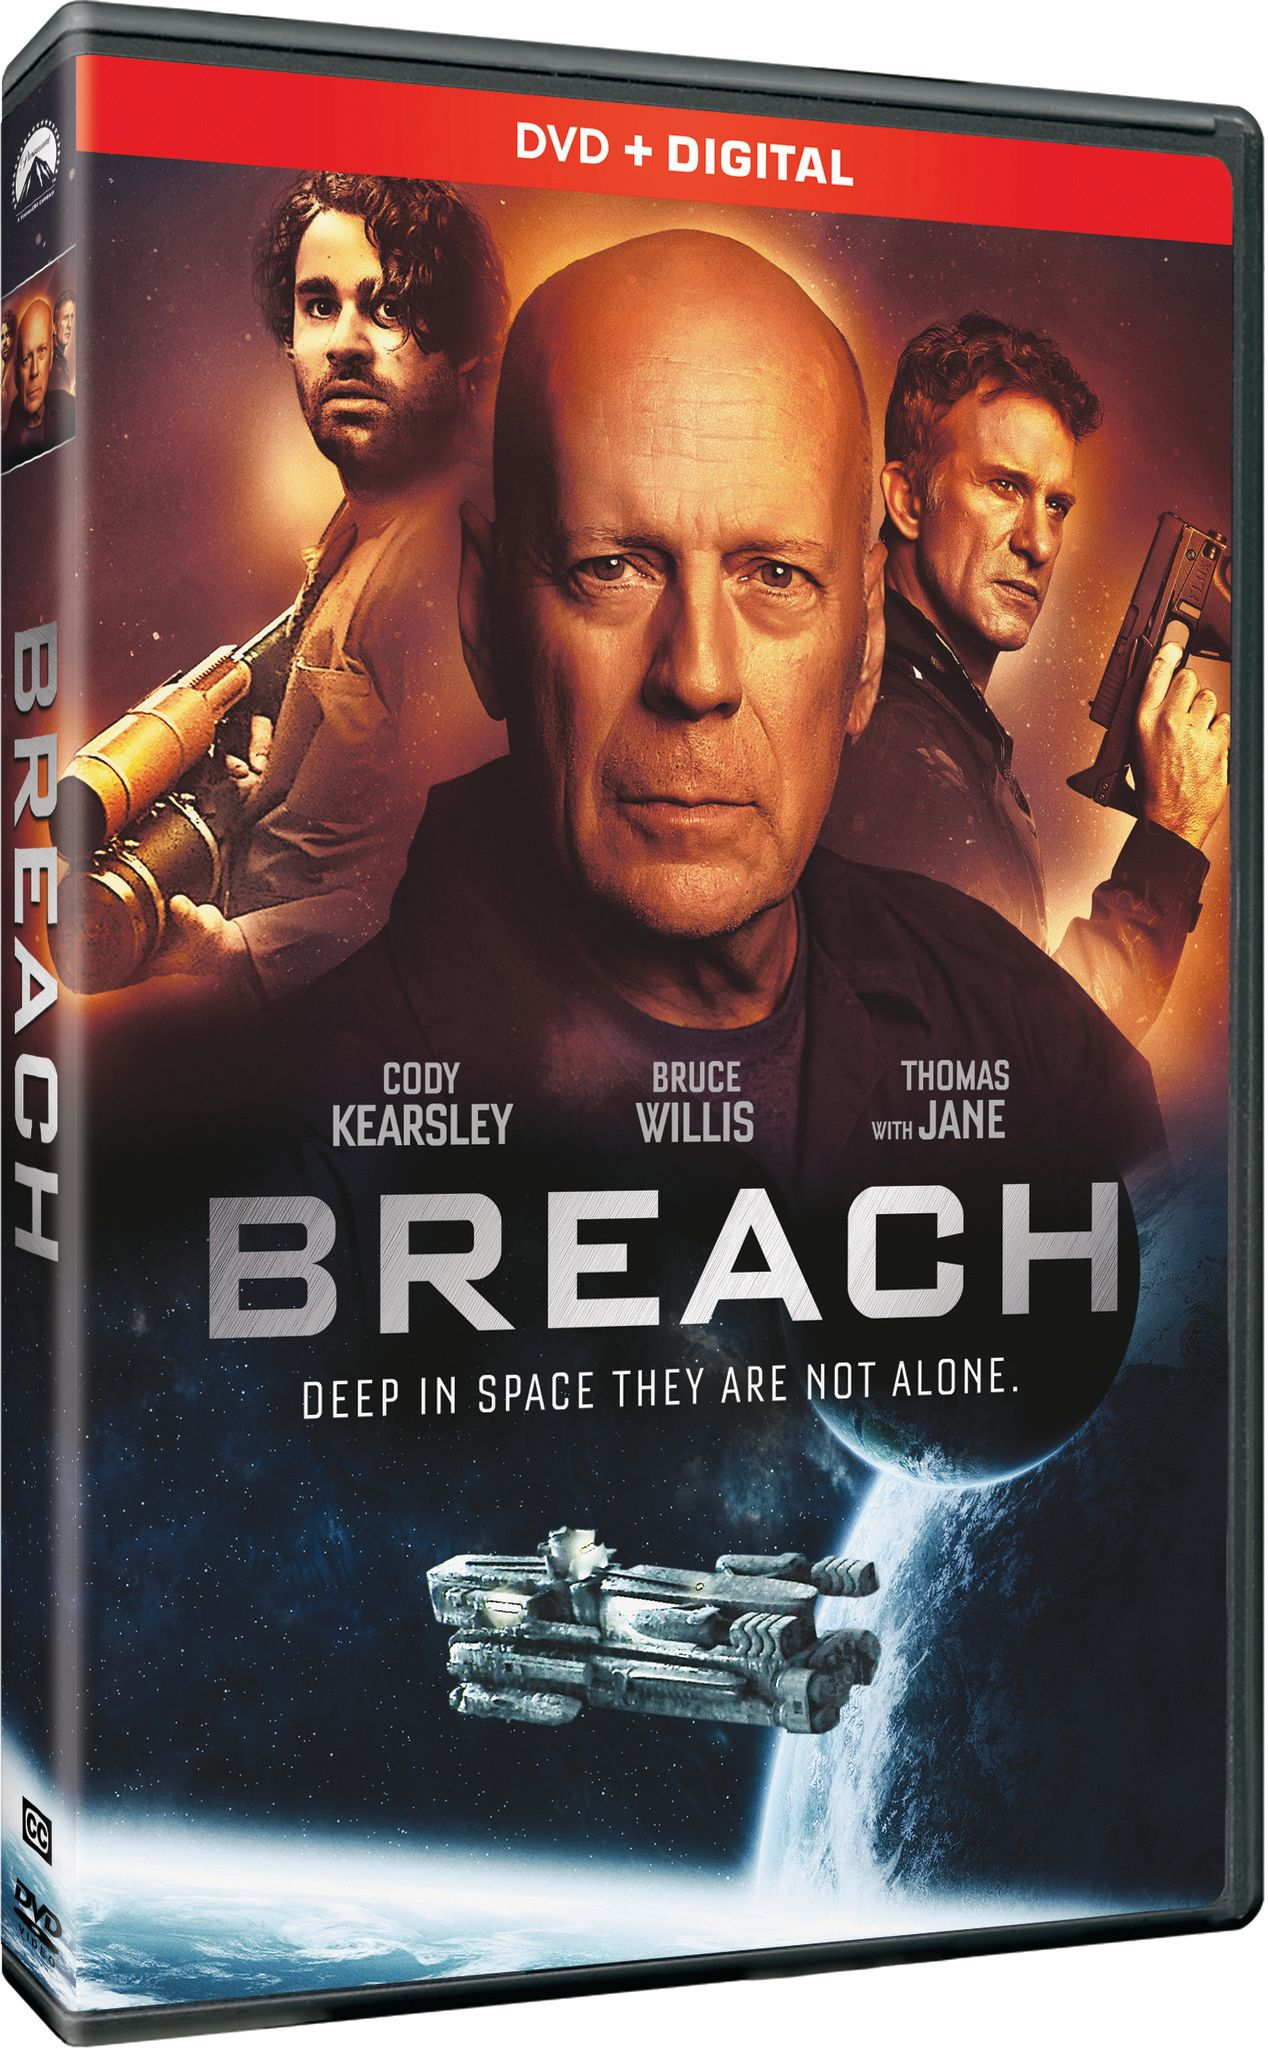 Breach Blu-ray Review